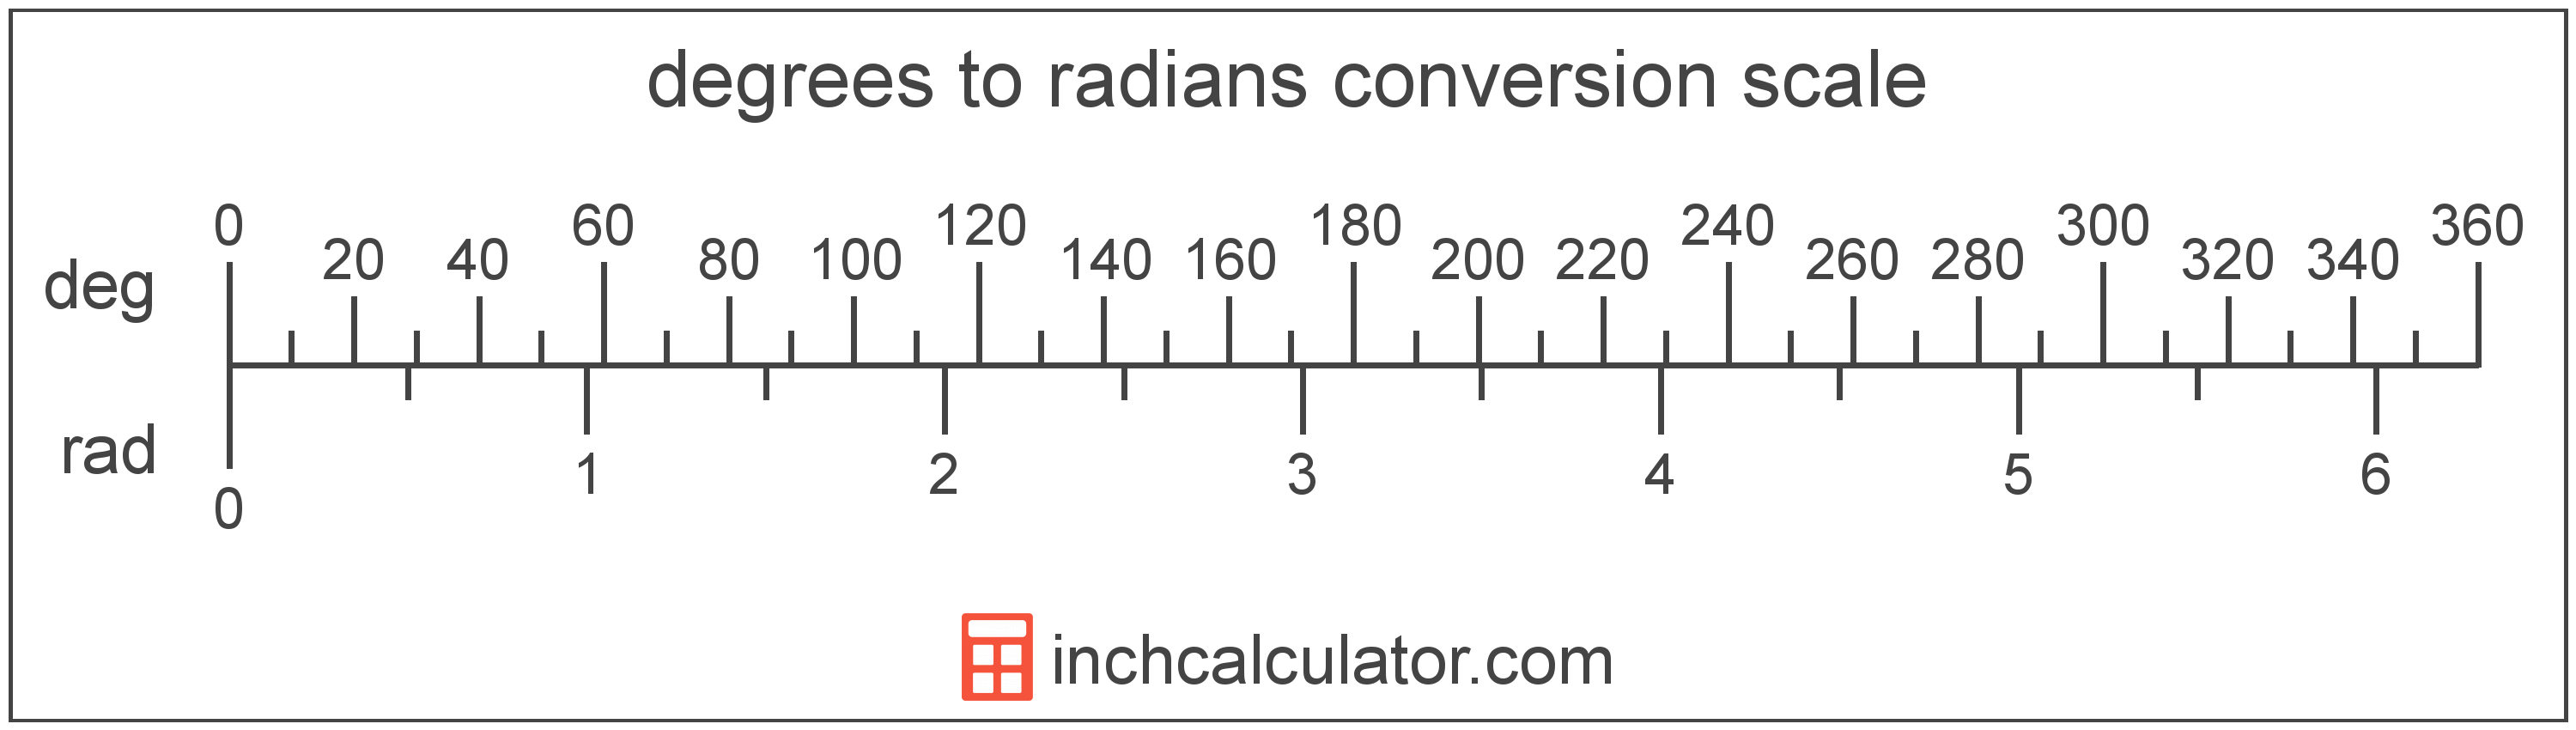 Degrees To Radians Conversion To Rad